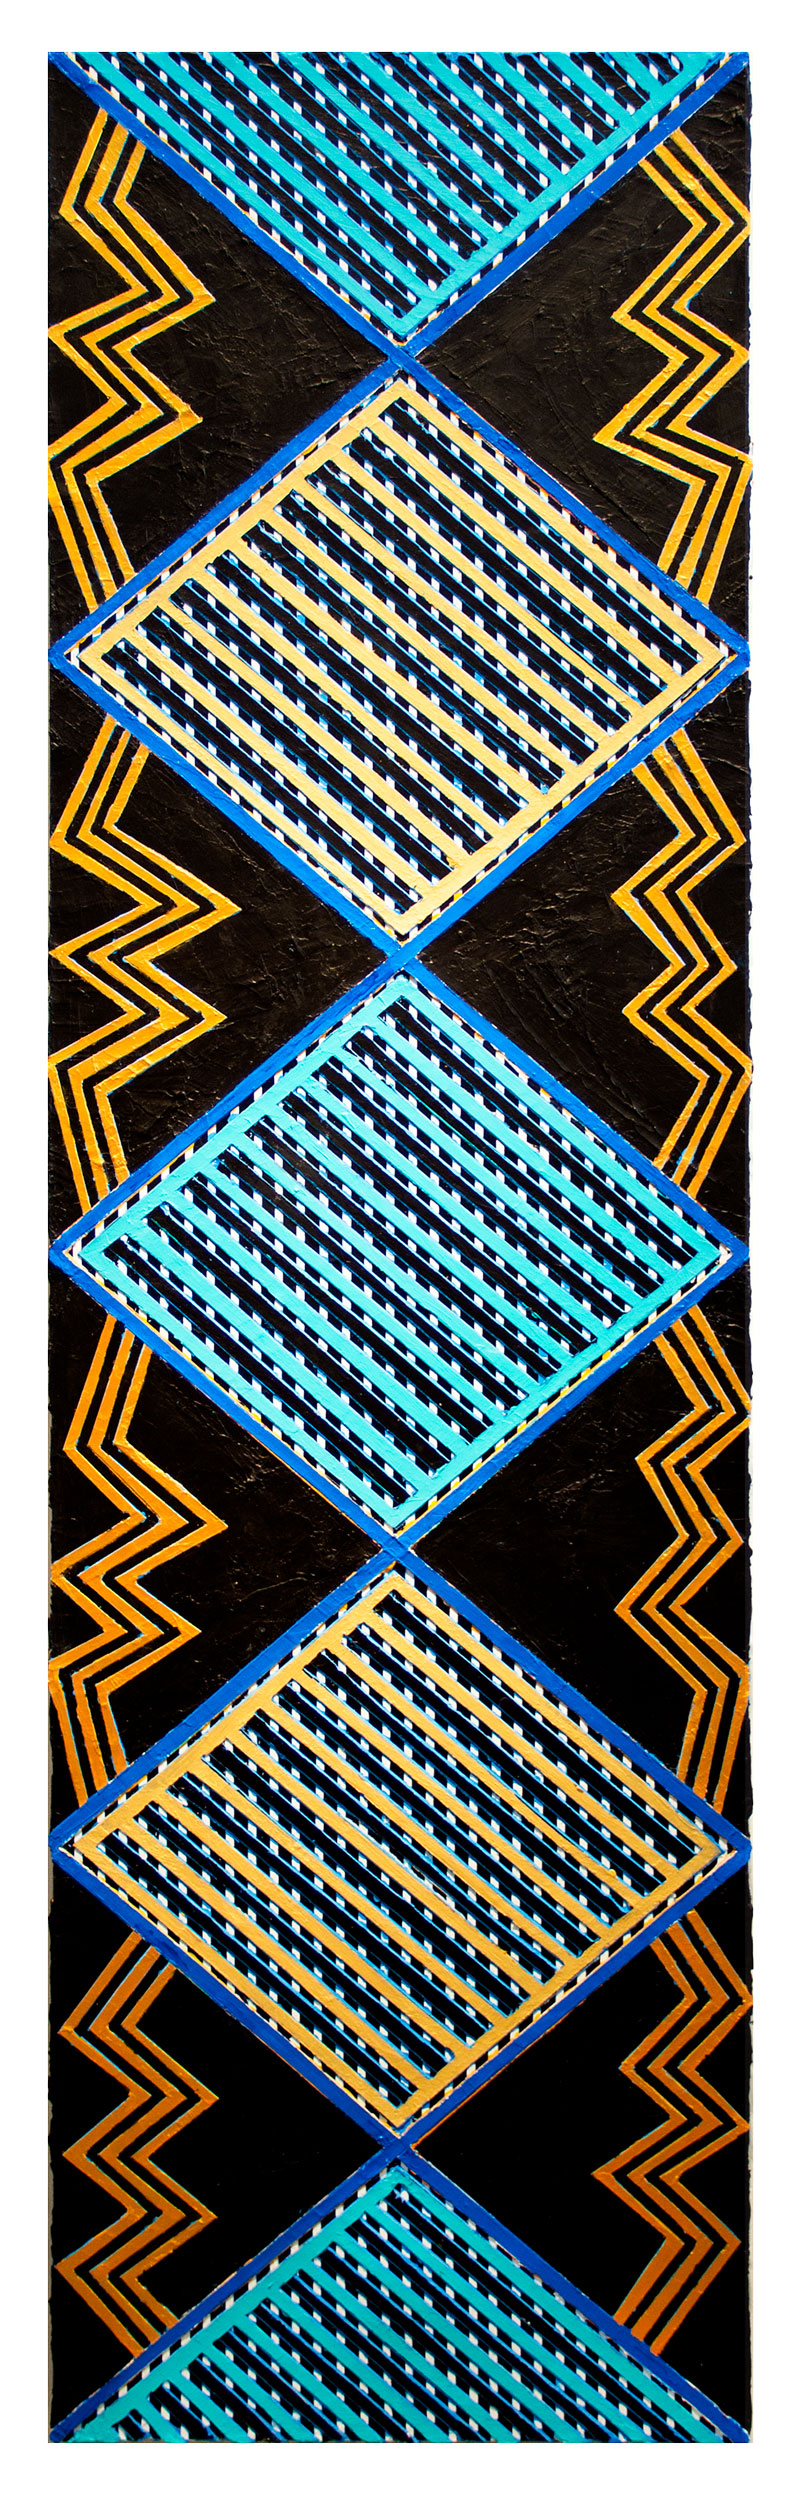 "2017           ""Zig-Zags w. Gold & Turquoise Diamonds""  Acrylic on Canvas 84H x 24W"